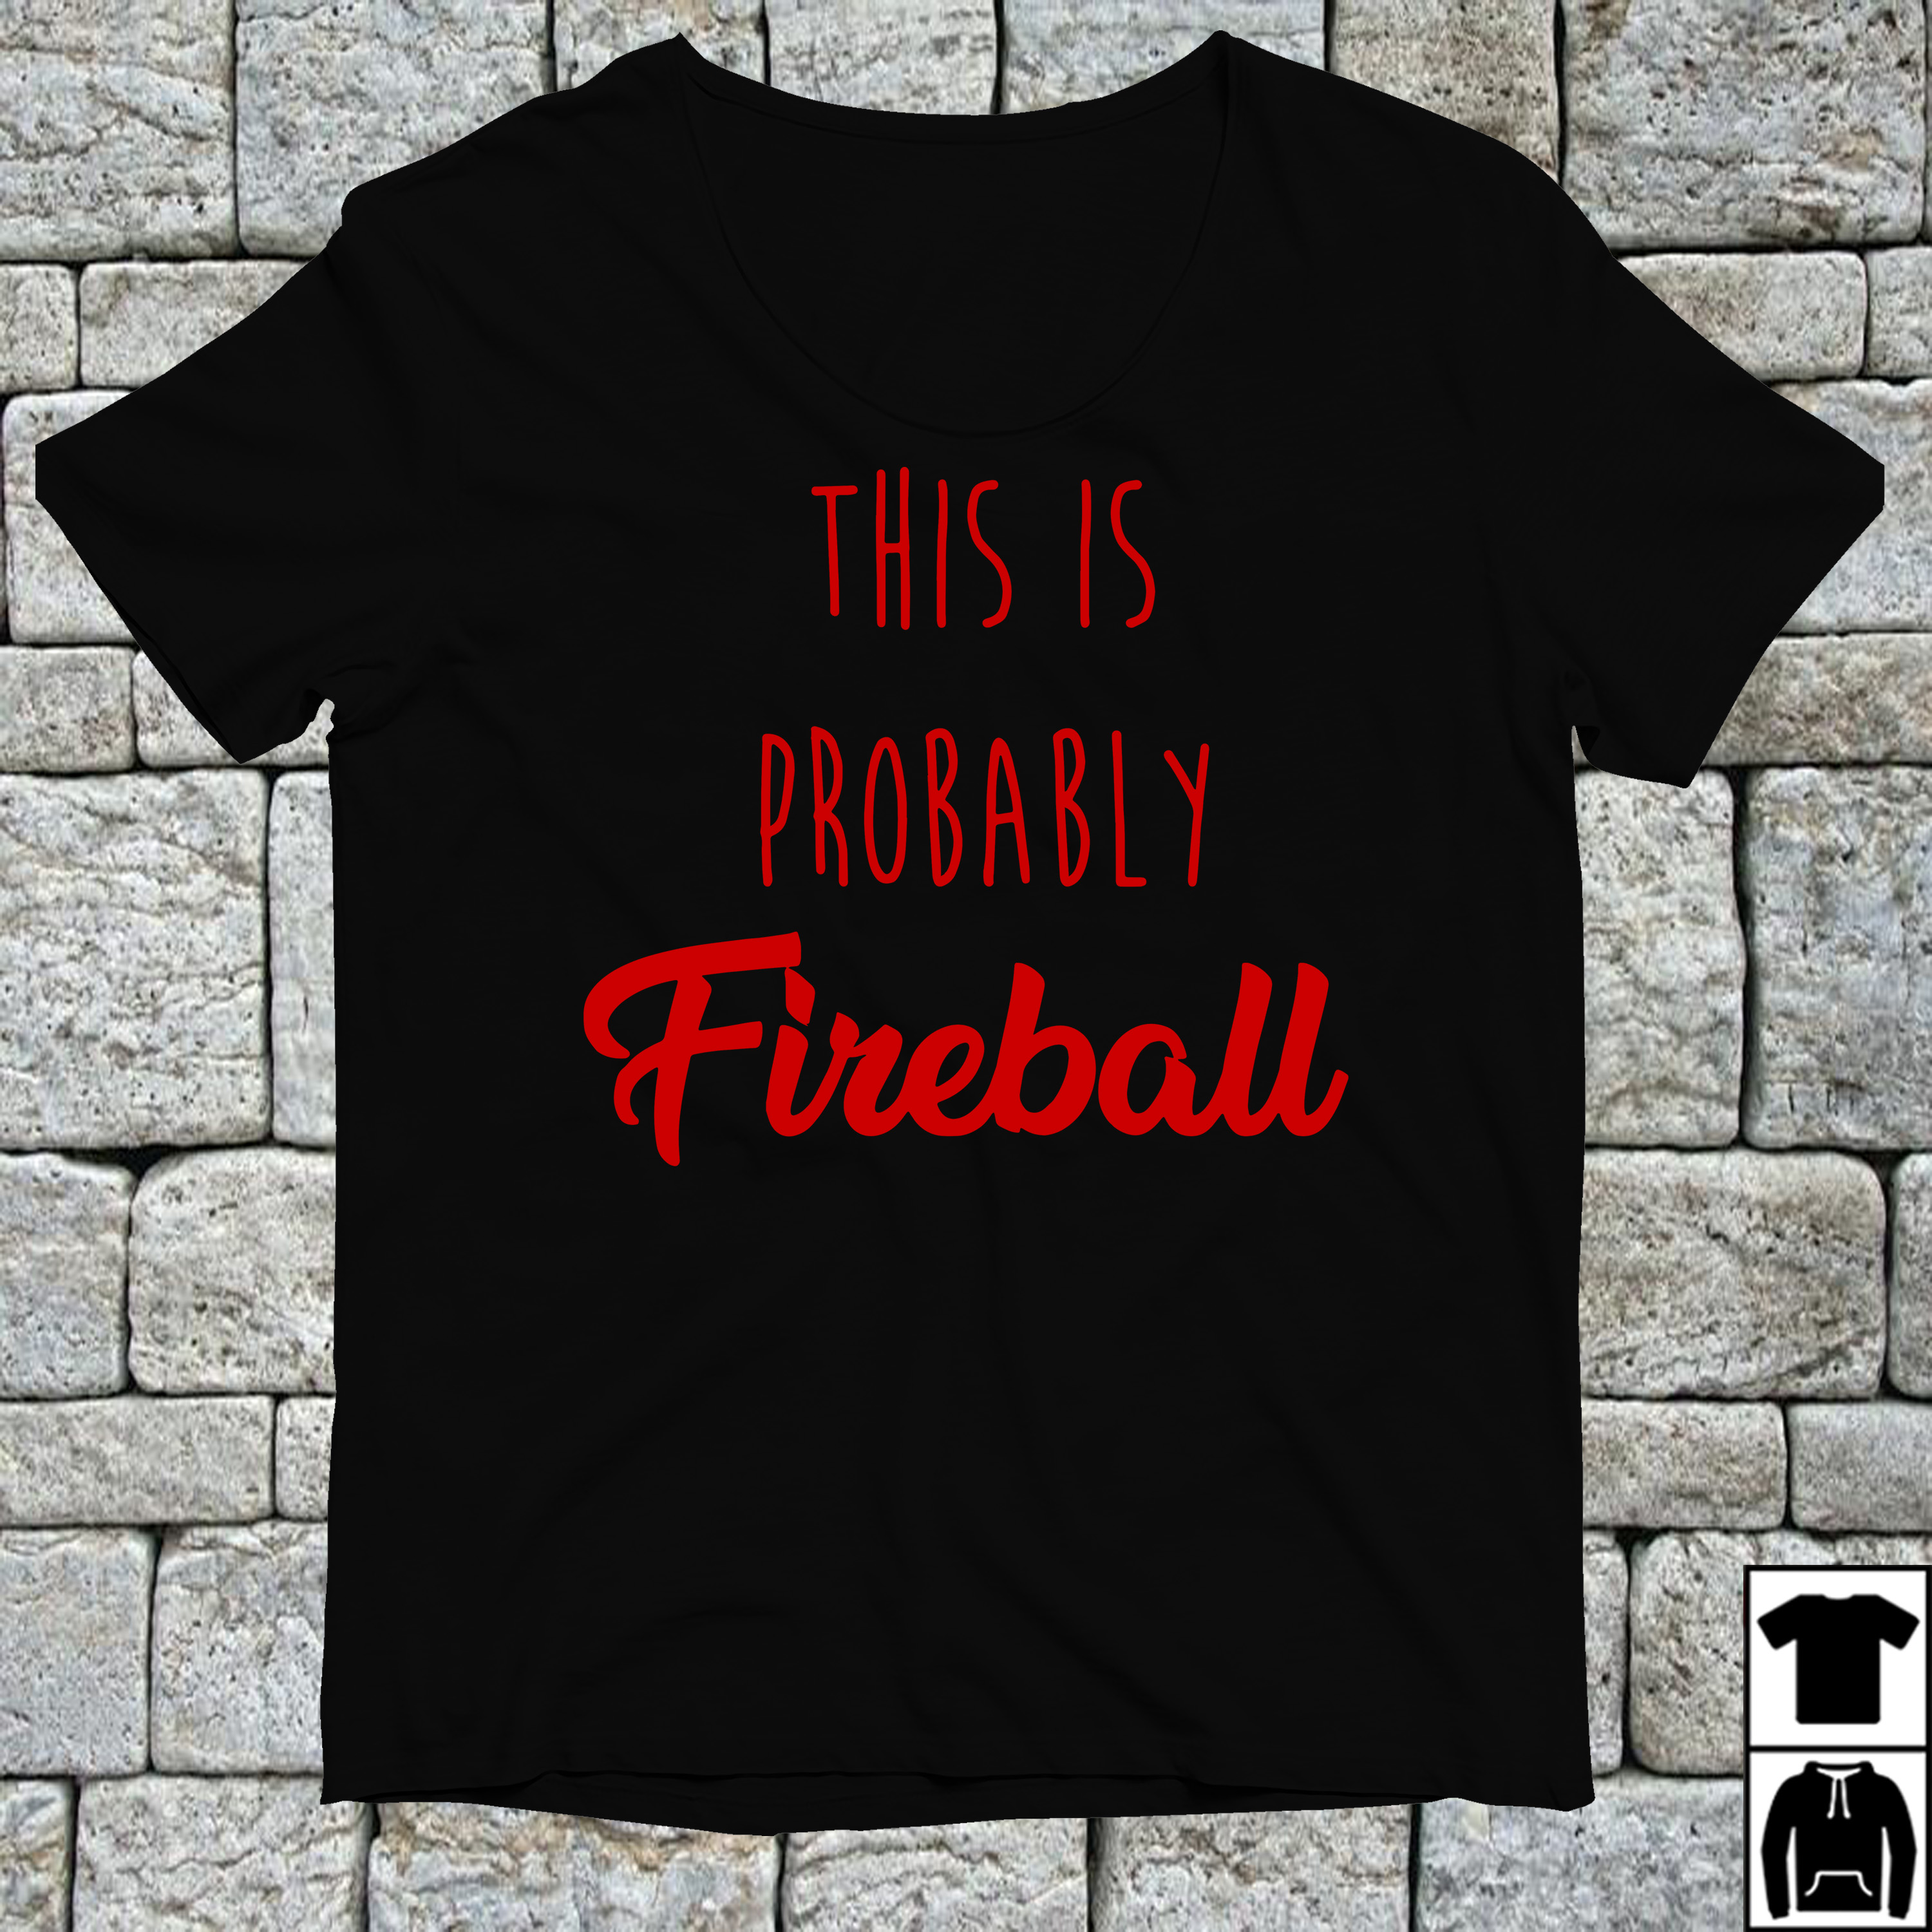 This is probably Fireball shirt